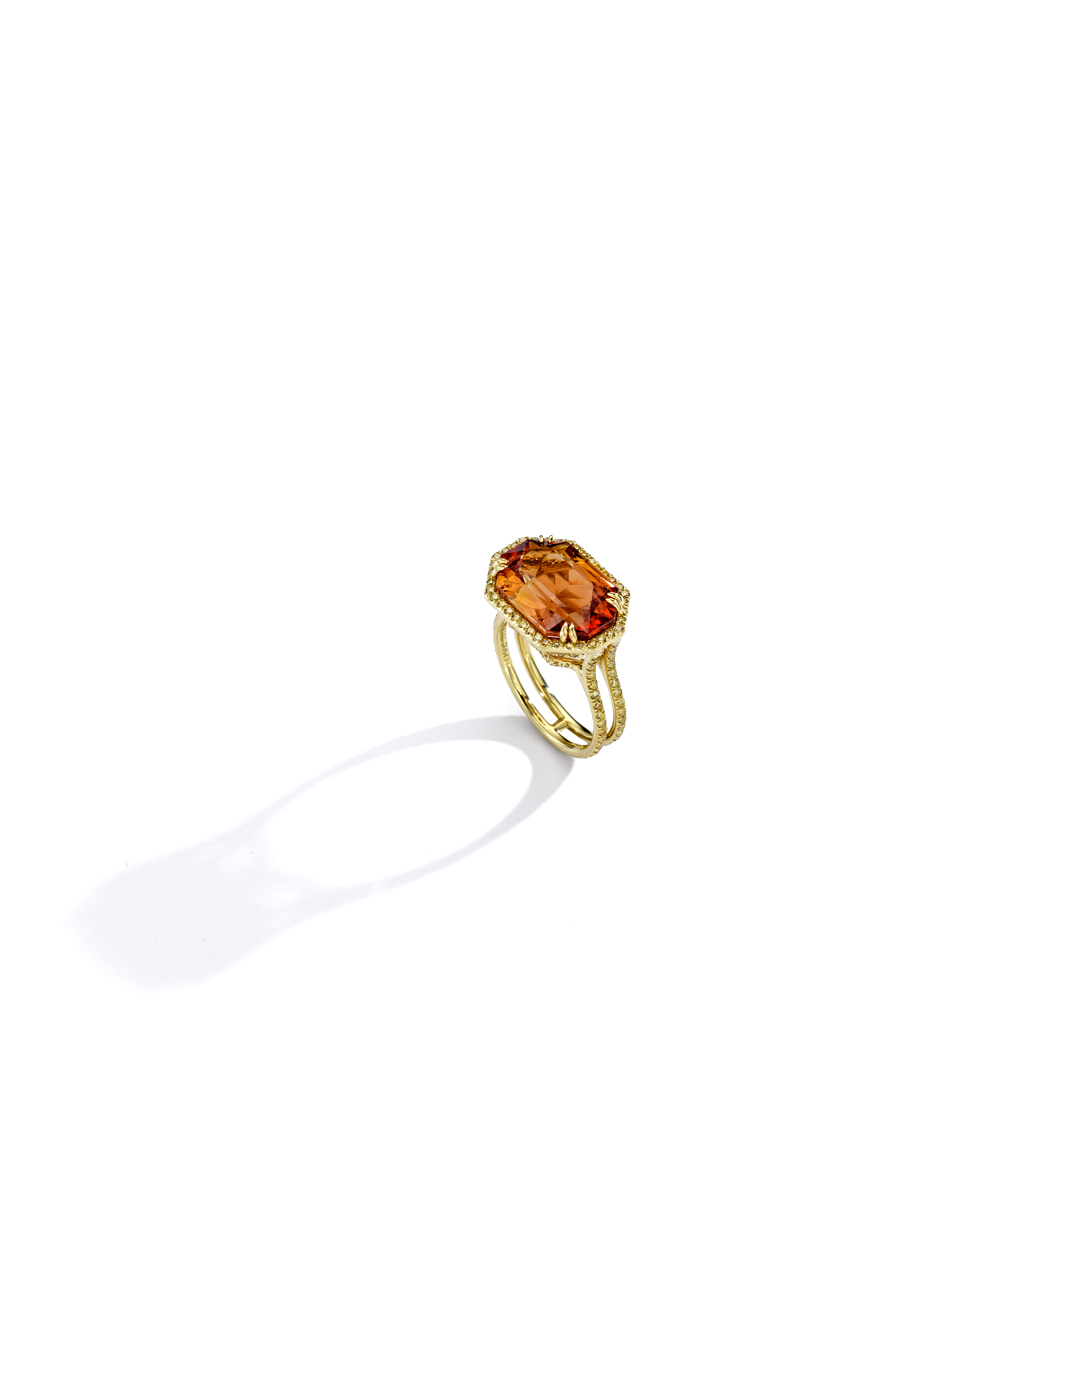 mish_products_rings_Arden-Plychrm Tourm-Ring-1